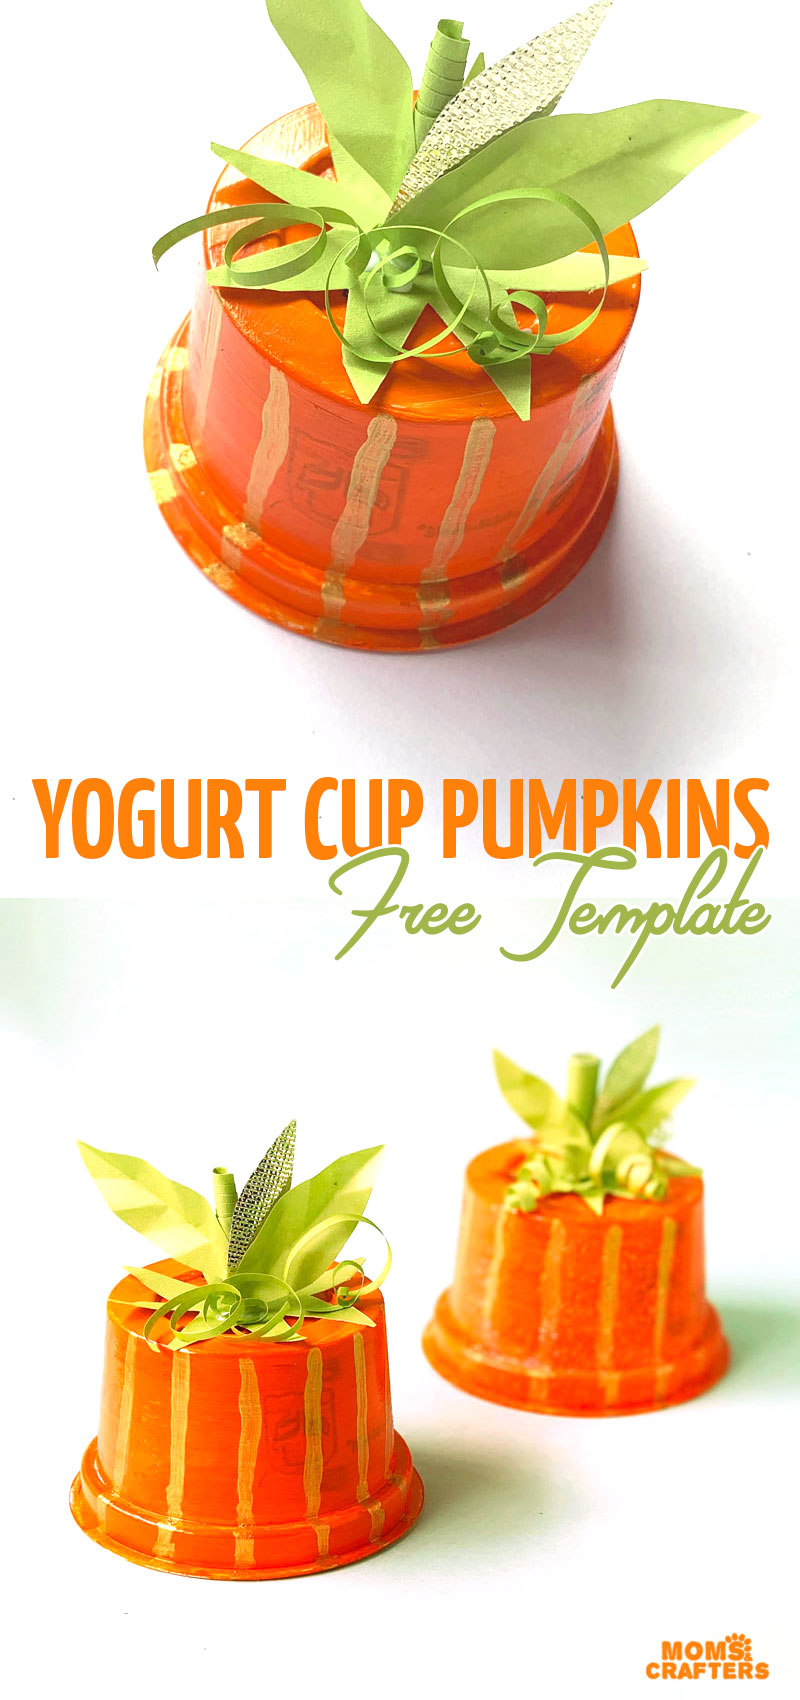 Make your own recycled pumpkins using yogurt or applesauce cups! This fun pumpkin craft for kids - for toddlers, preschoolers, and big kids too - is super easy and uses stuff you already have. And the cool topper comes with a free printable template.